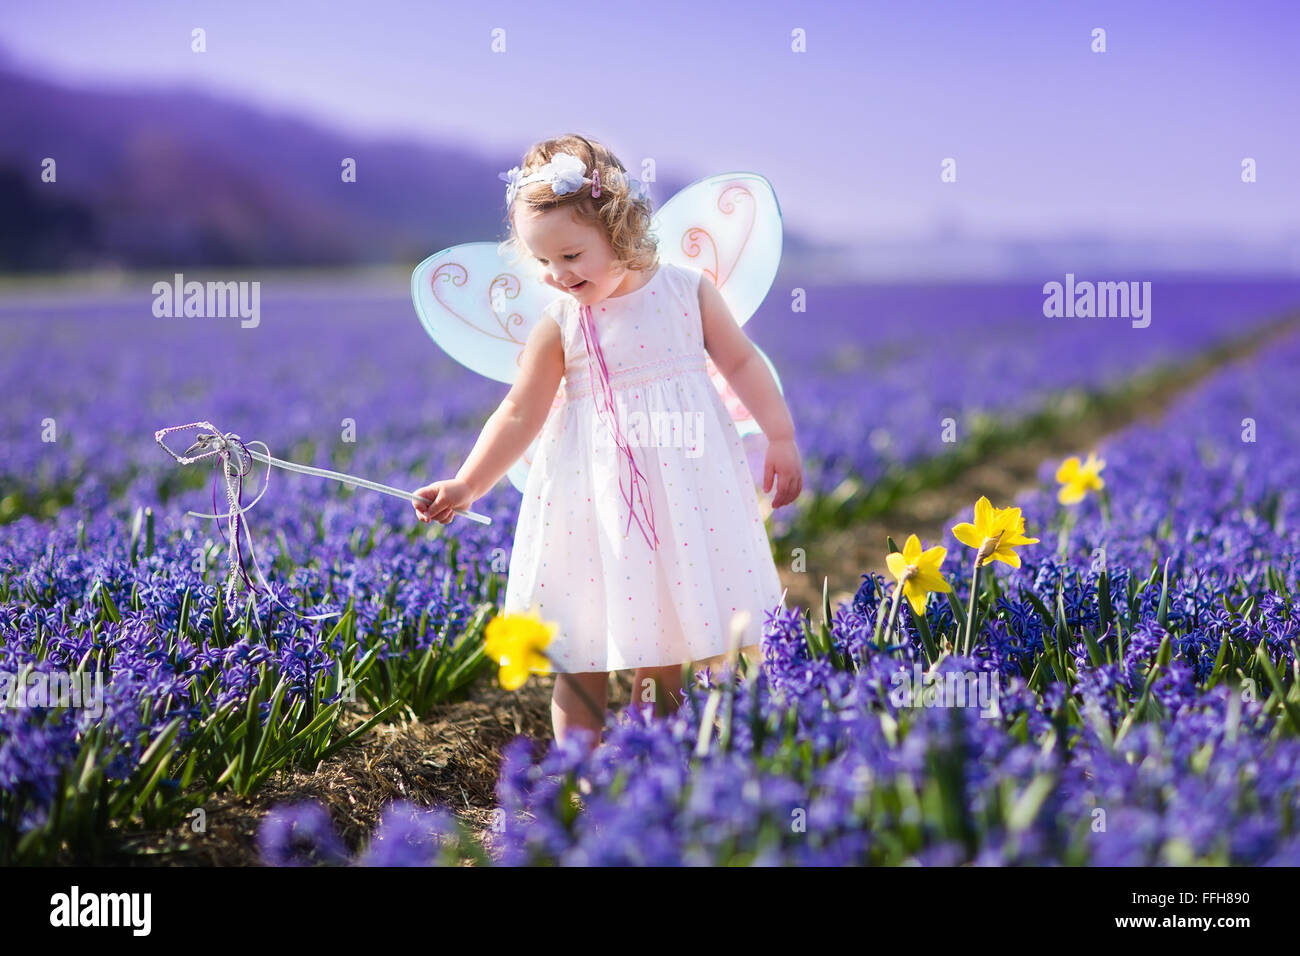 fbd3b6c4dff9 Cute curly little girl in flower crown and fairy costume with wings ...